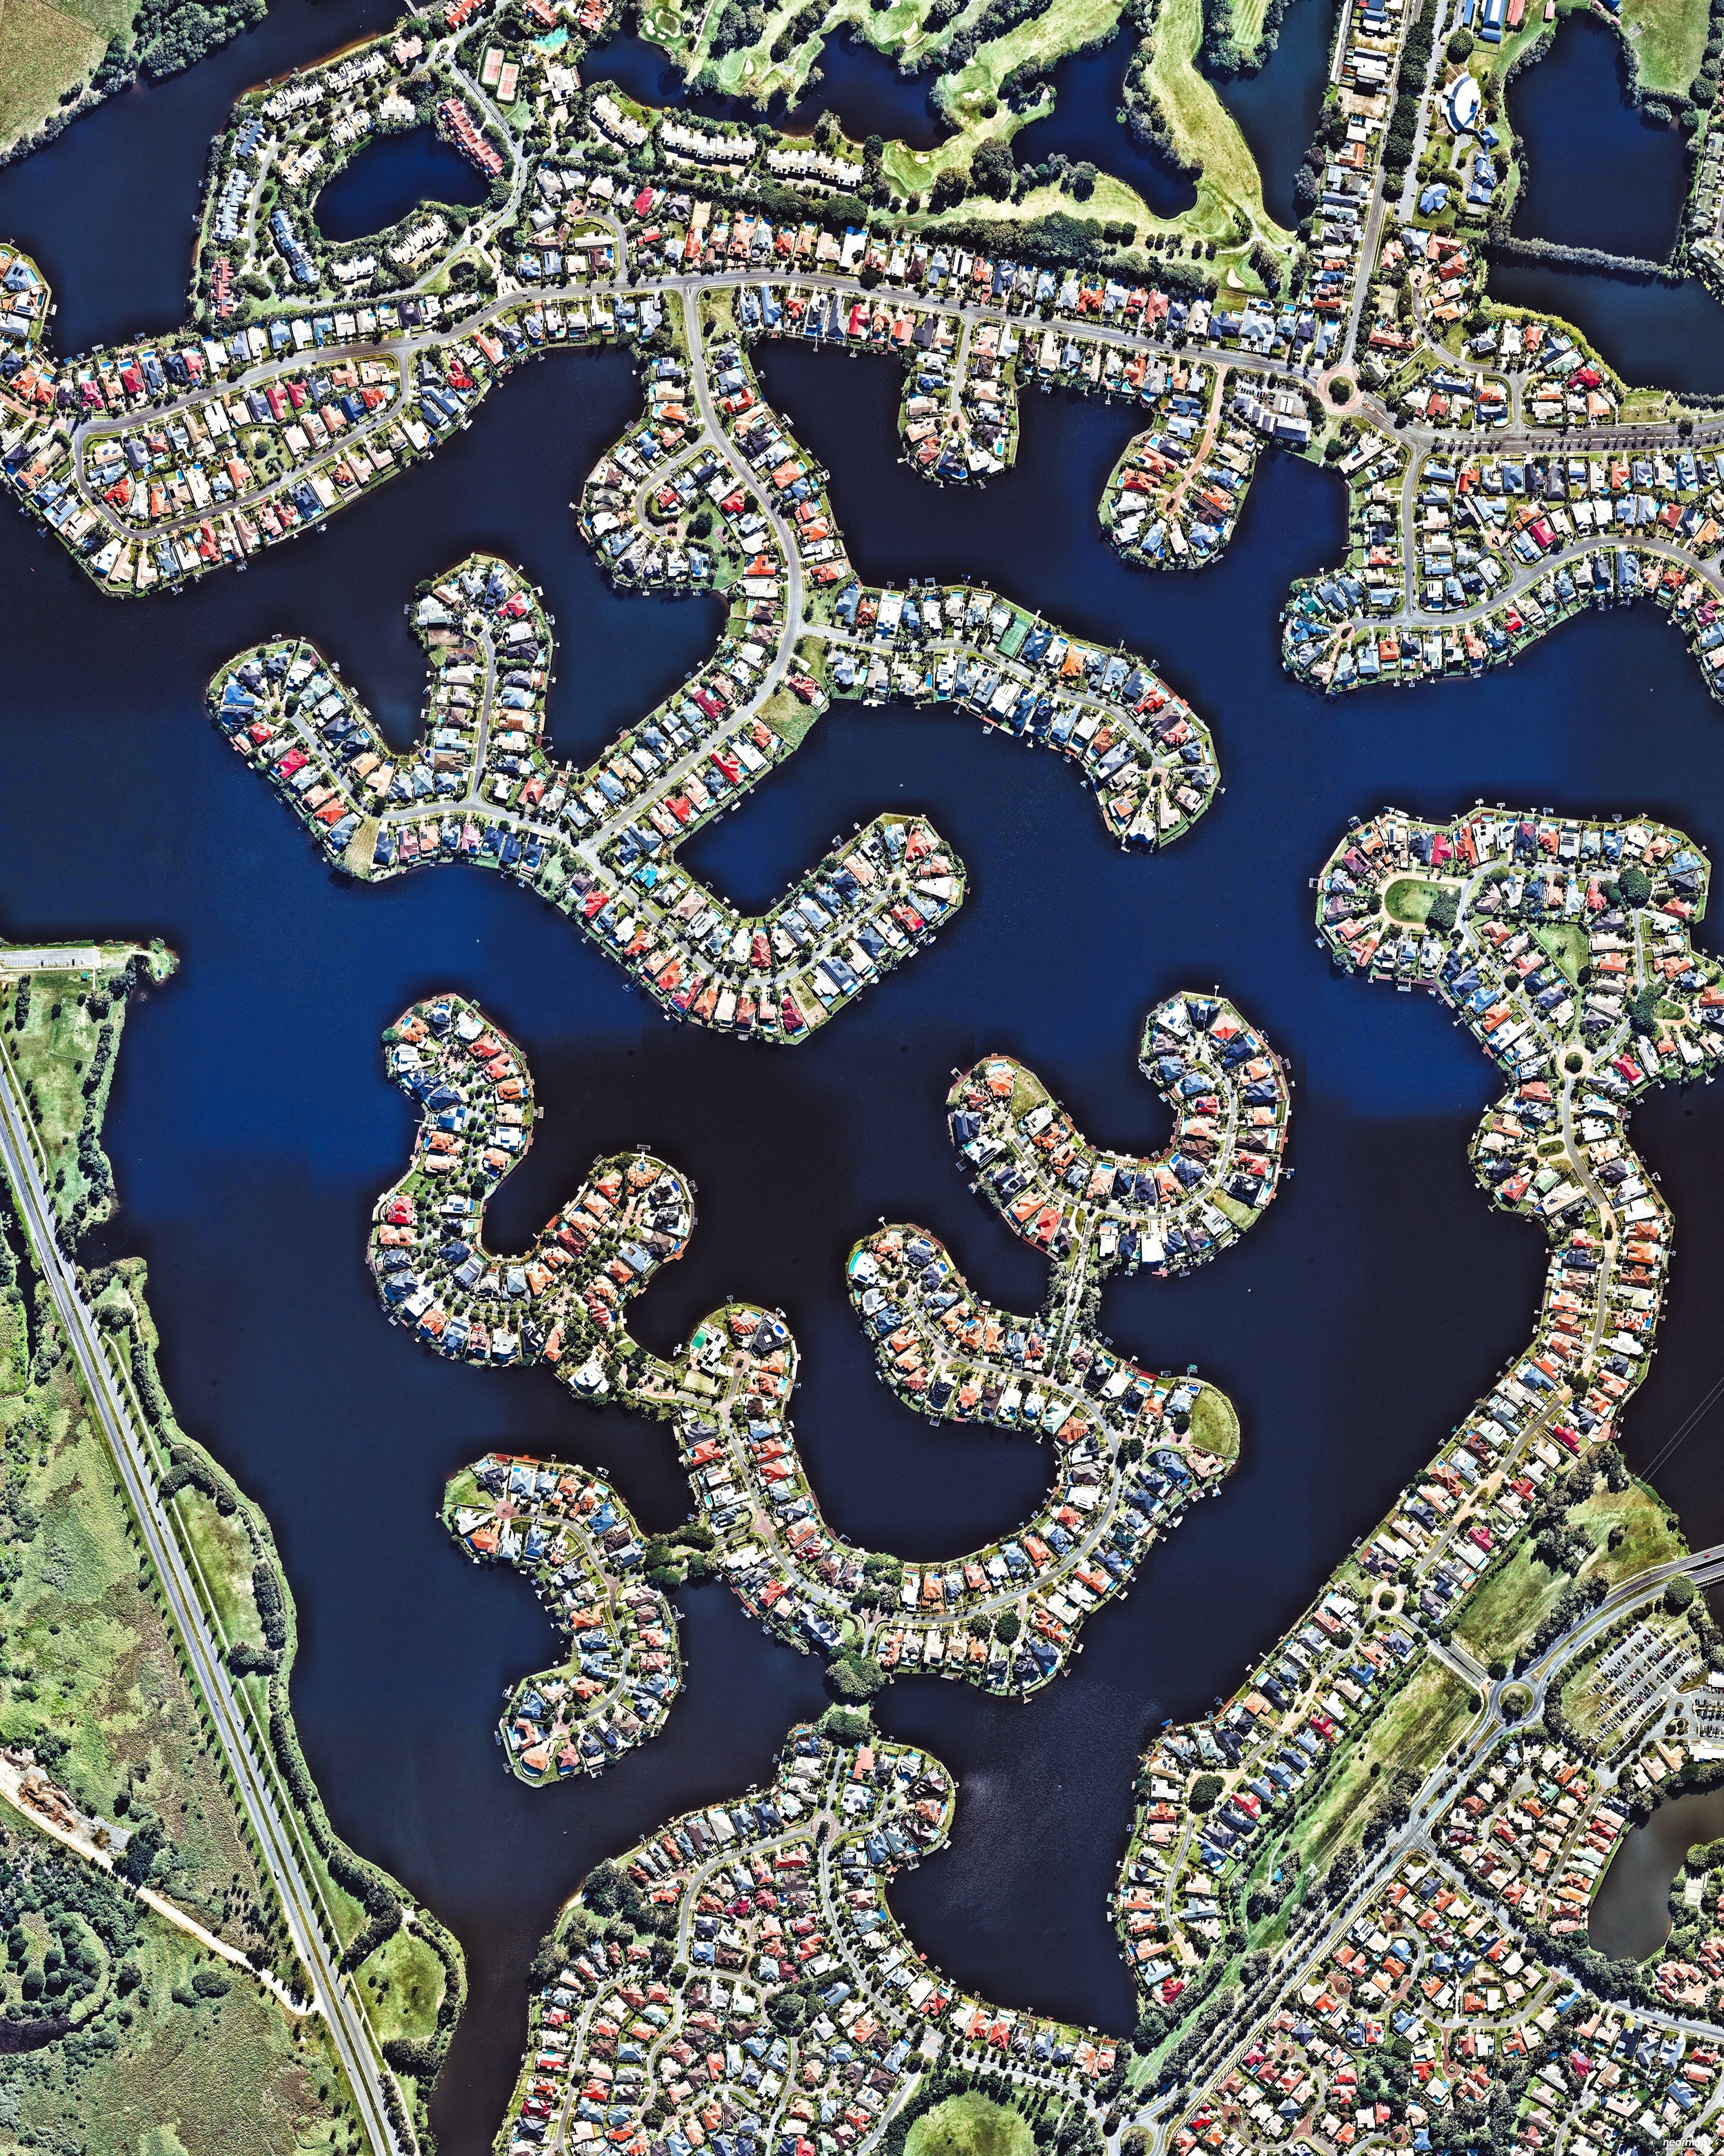 """Clear Island Waters is a suburb on the Gold Coast in Queensland, Australia. Built around artificial canals, it is a residential community that is home to roughly 4,000 people. Clear Island Waters is just a few miles west of Mermaid Beach, one of many beaches along the Gold Coast's 43-mile coastline.  28°02'40.2""""S, 153°23'51.4""""E  Source imagery: Nearmap"""